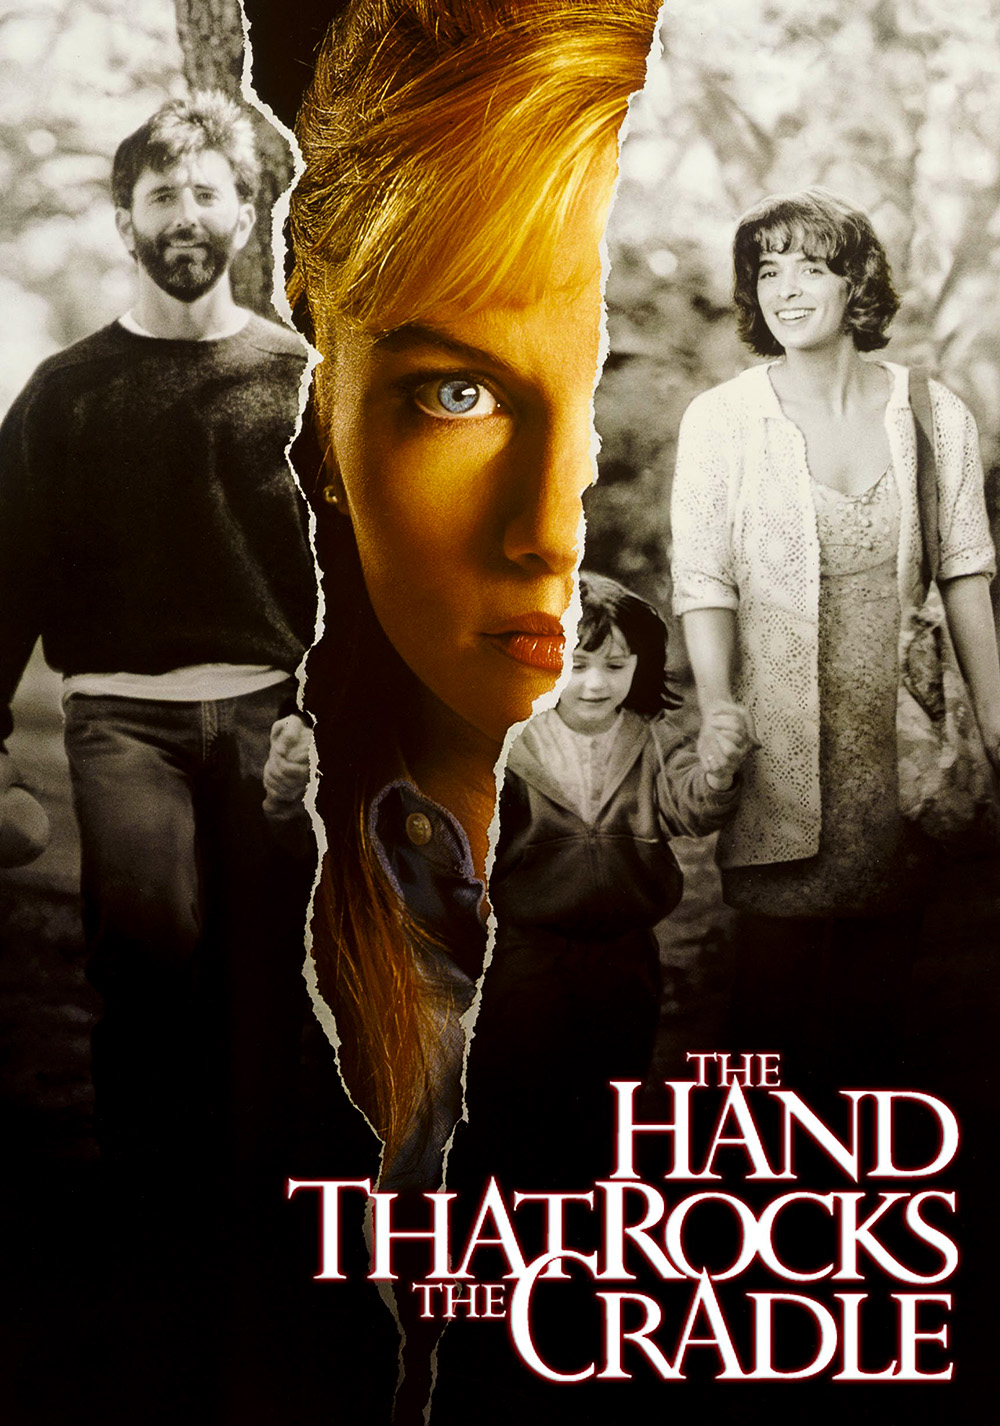 the-hand-that-rocks-the-cradle-567472b5b8d4e.jpg